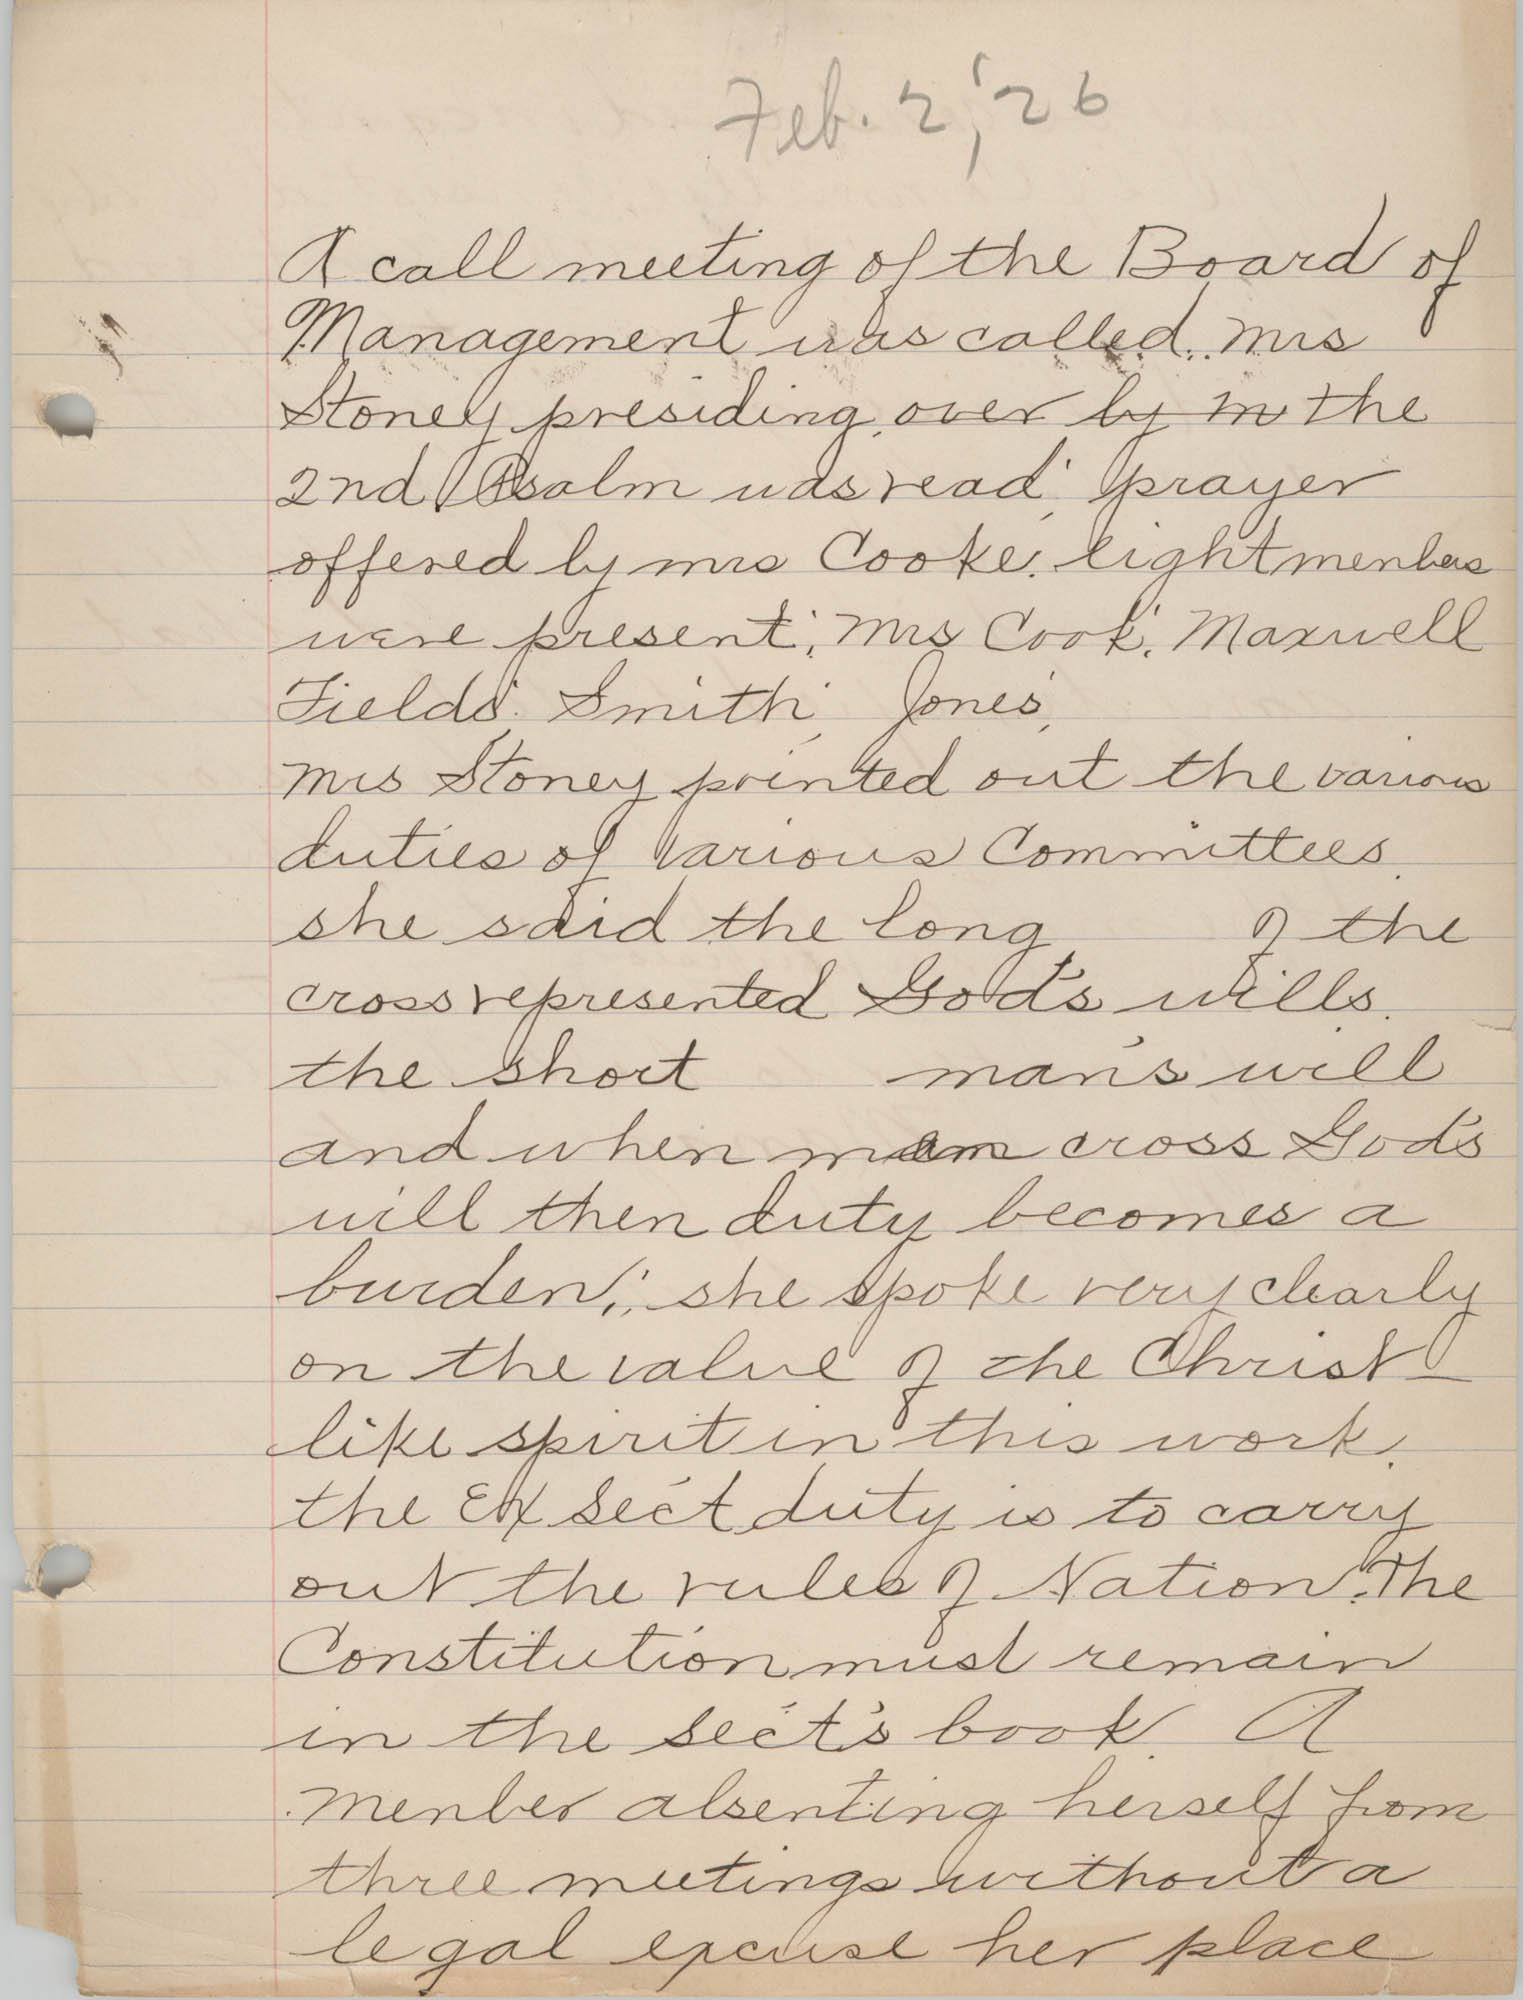 Minutes to the Board of Management, Coming Street Y.W.C.A., February 2, 1926